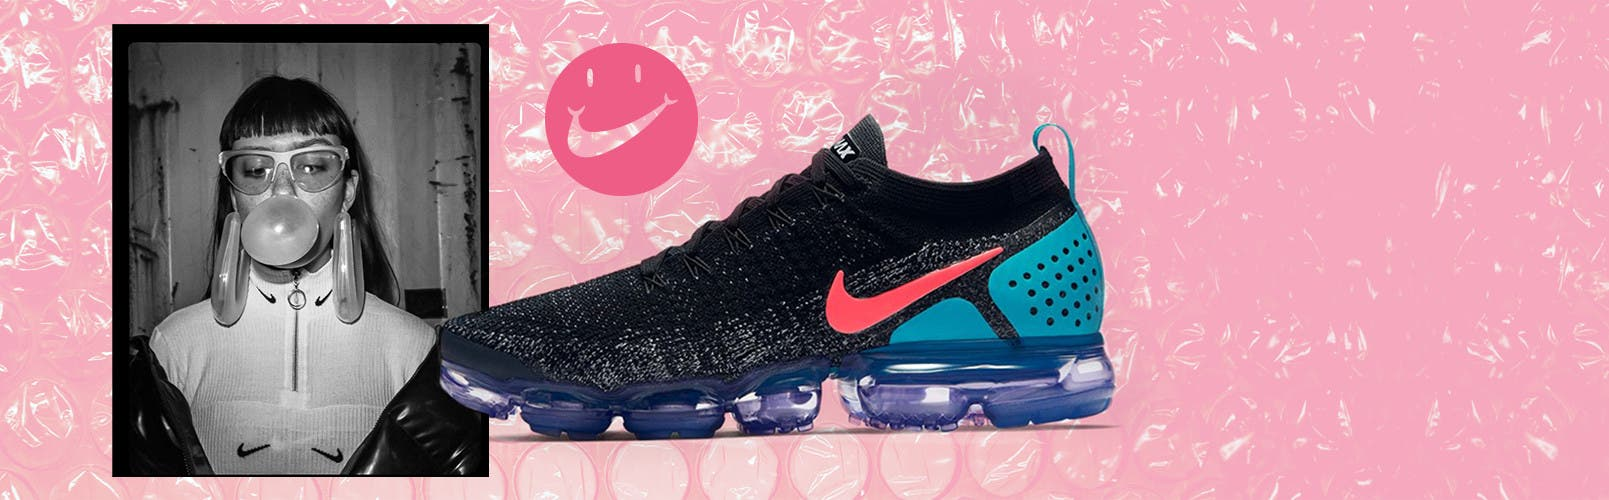 Nordstrom and Nike. Air Max month.